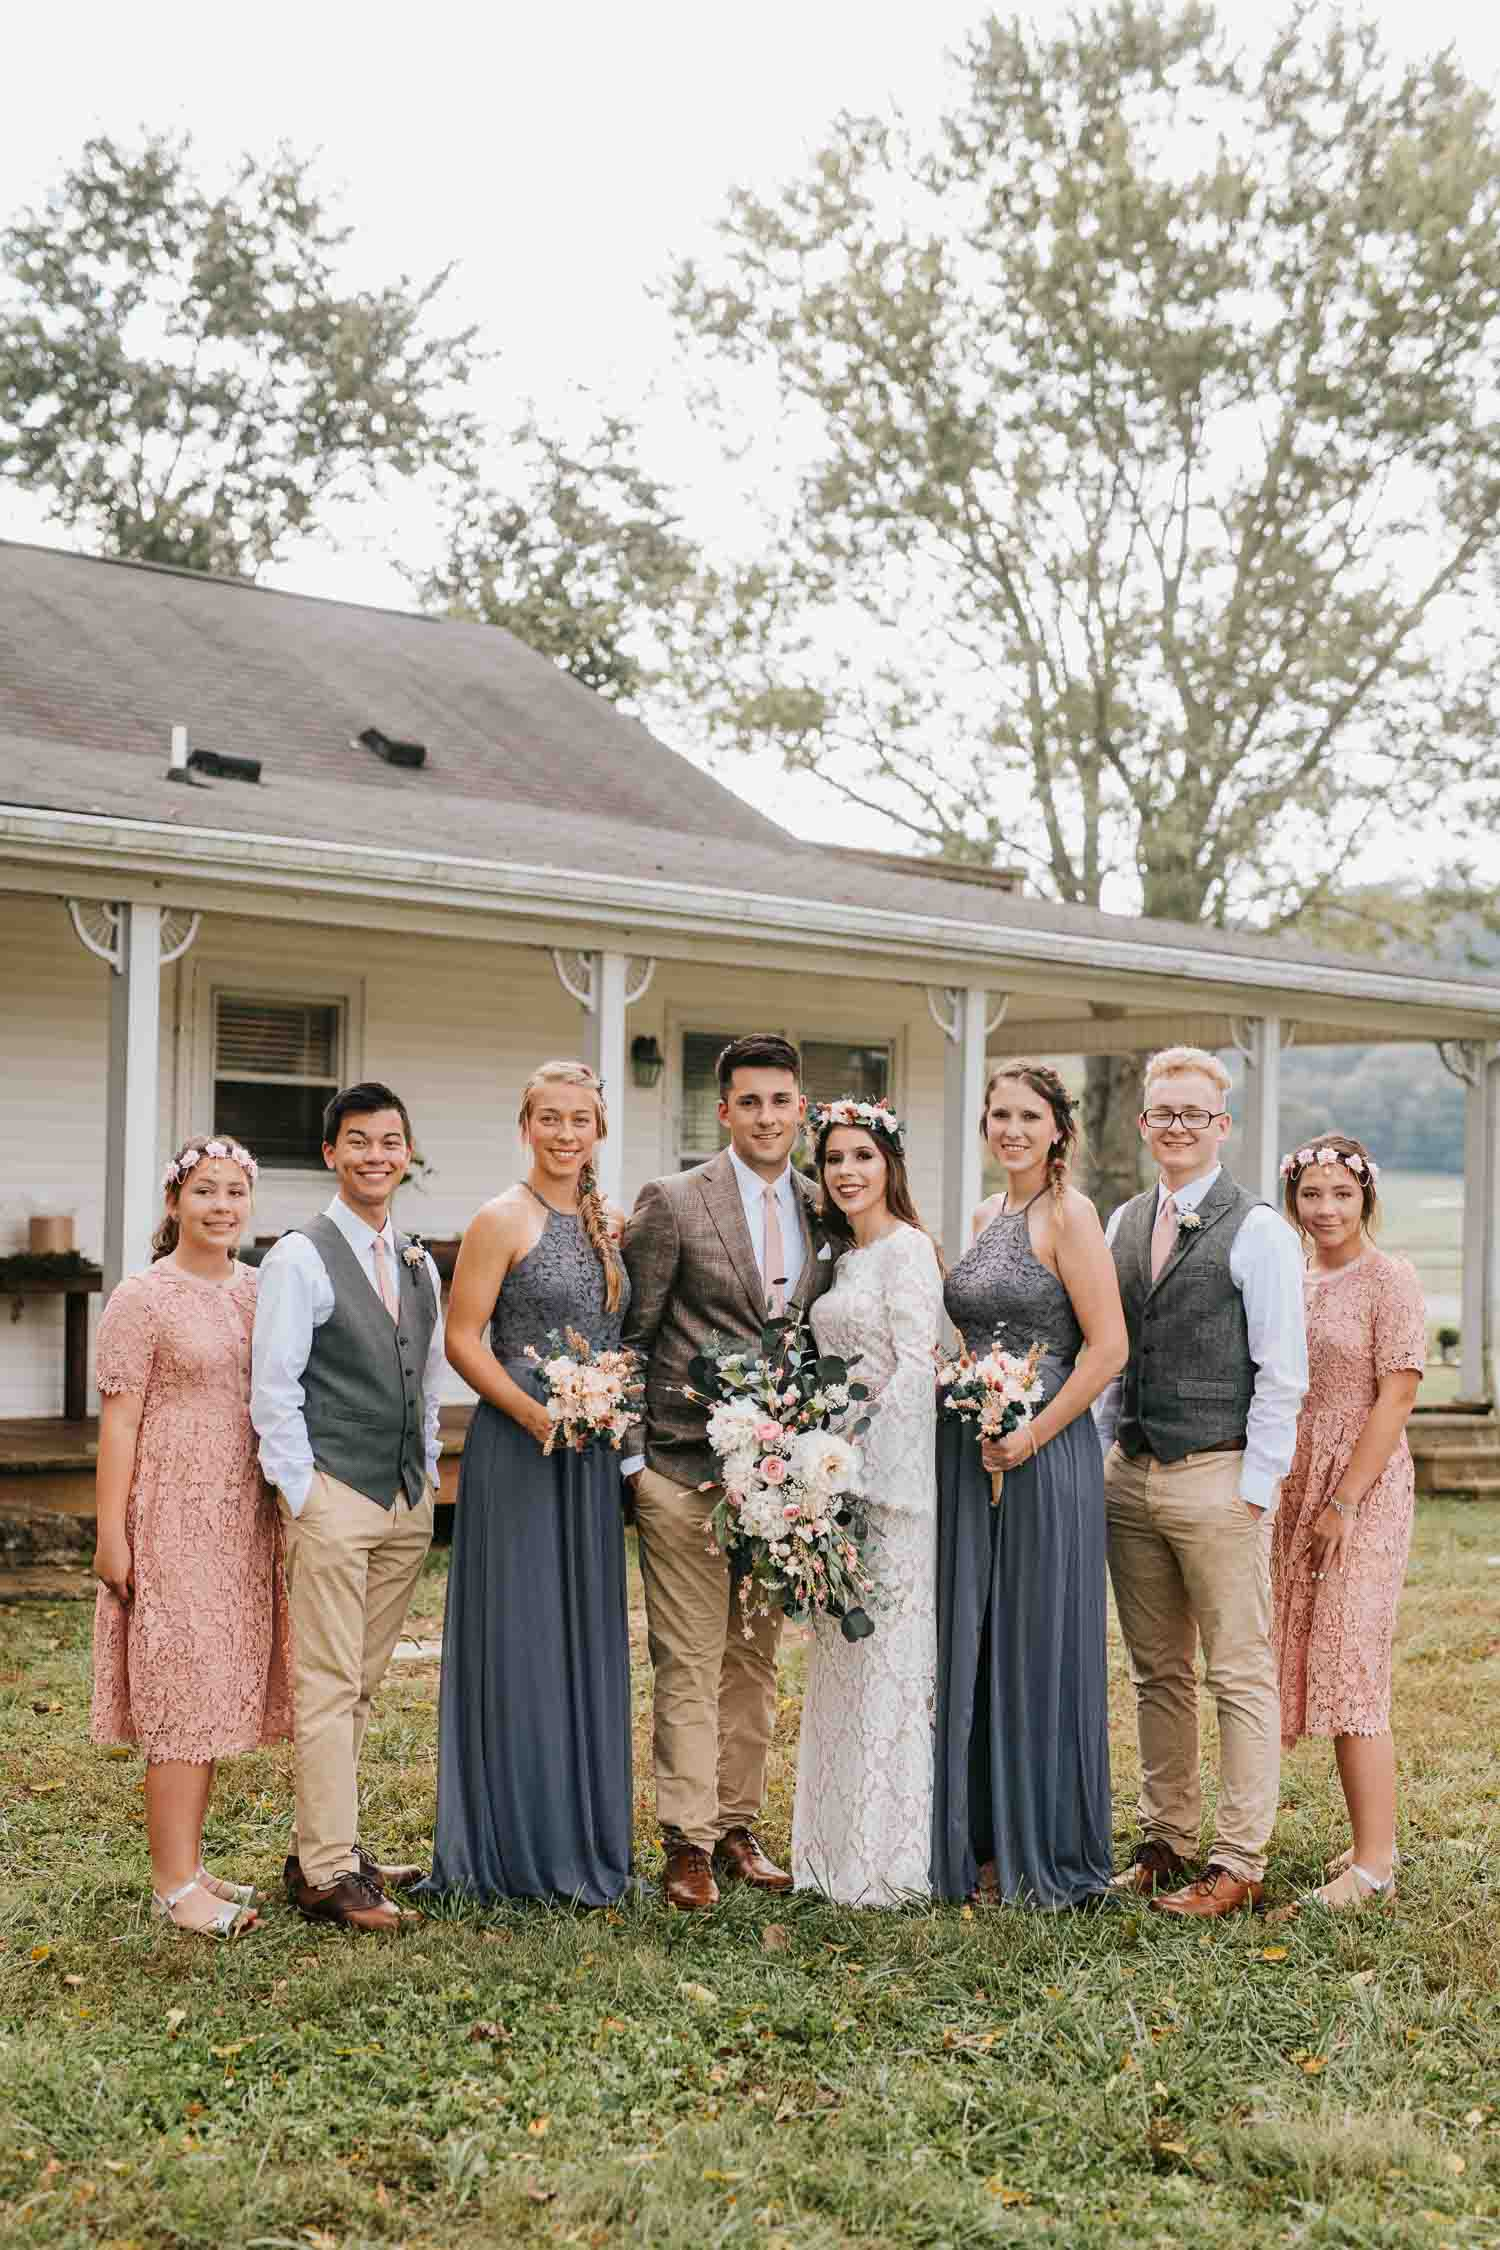 NashvilleWeddingPhotographer (2 of 2).jpg